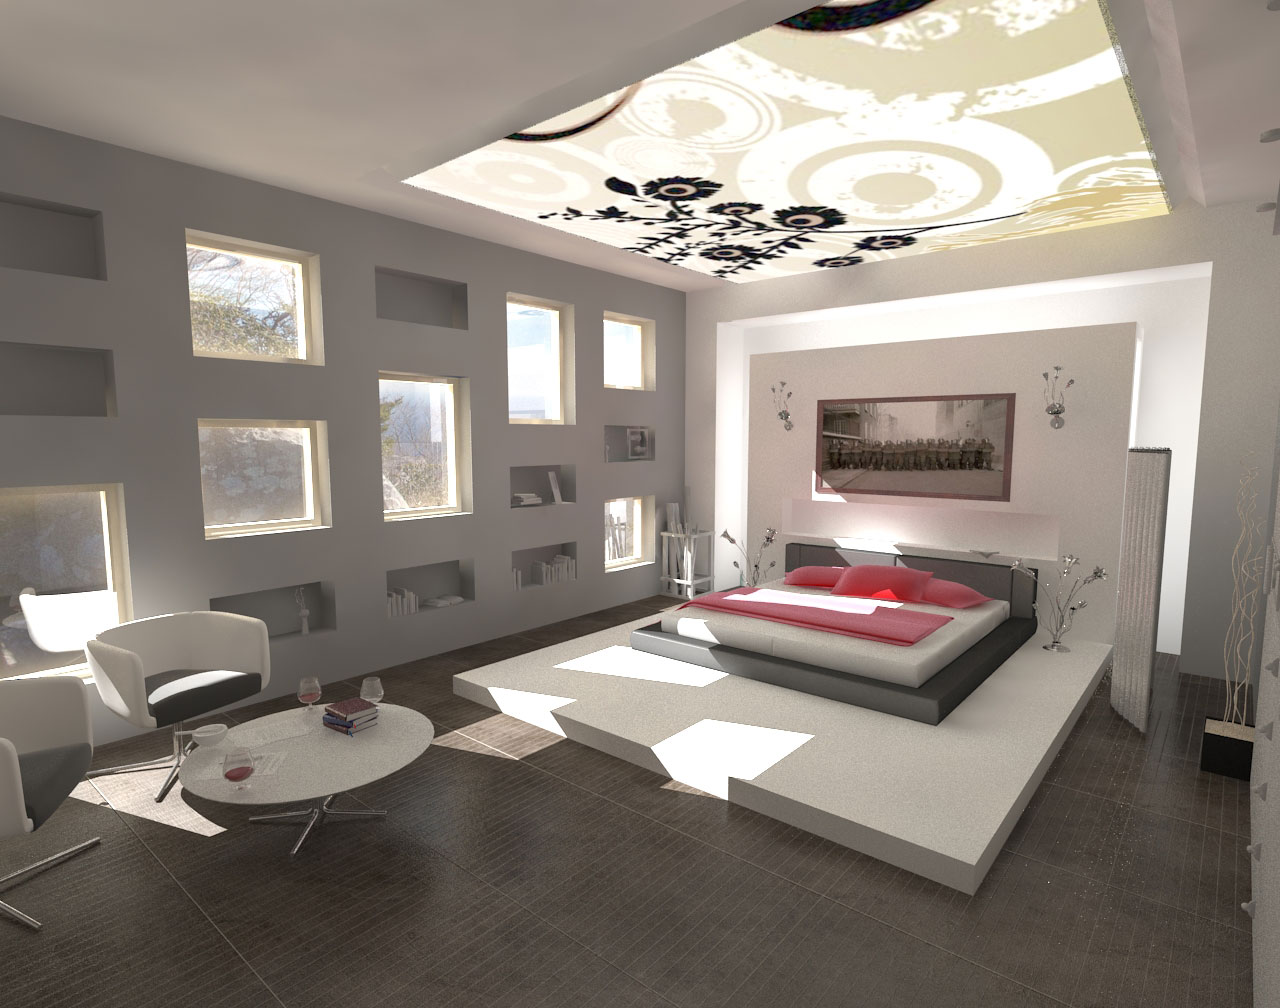 Bedroom Contemporary Interior Design Of Decorations Minimalist Design Modern Bedroom Interior